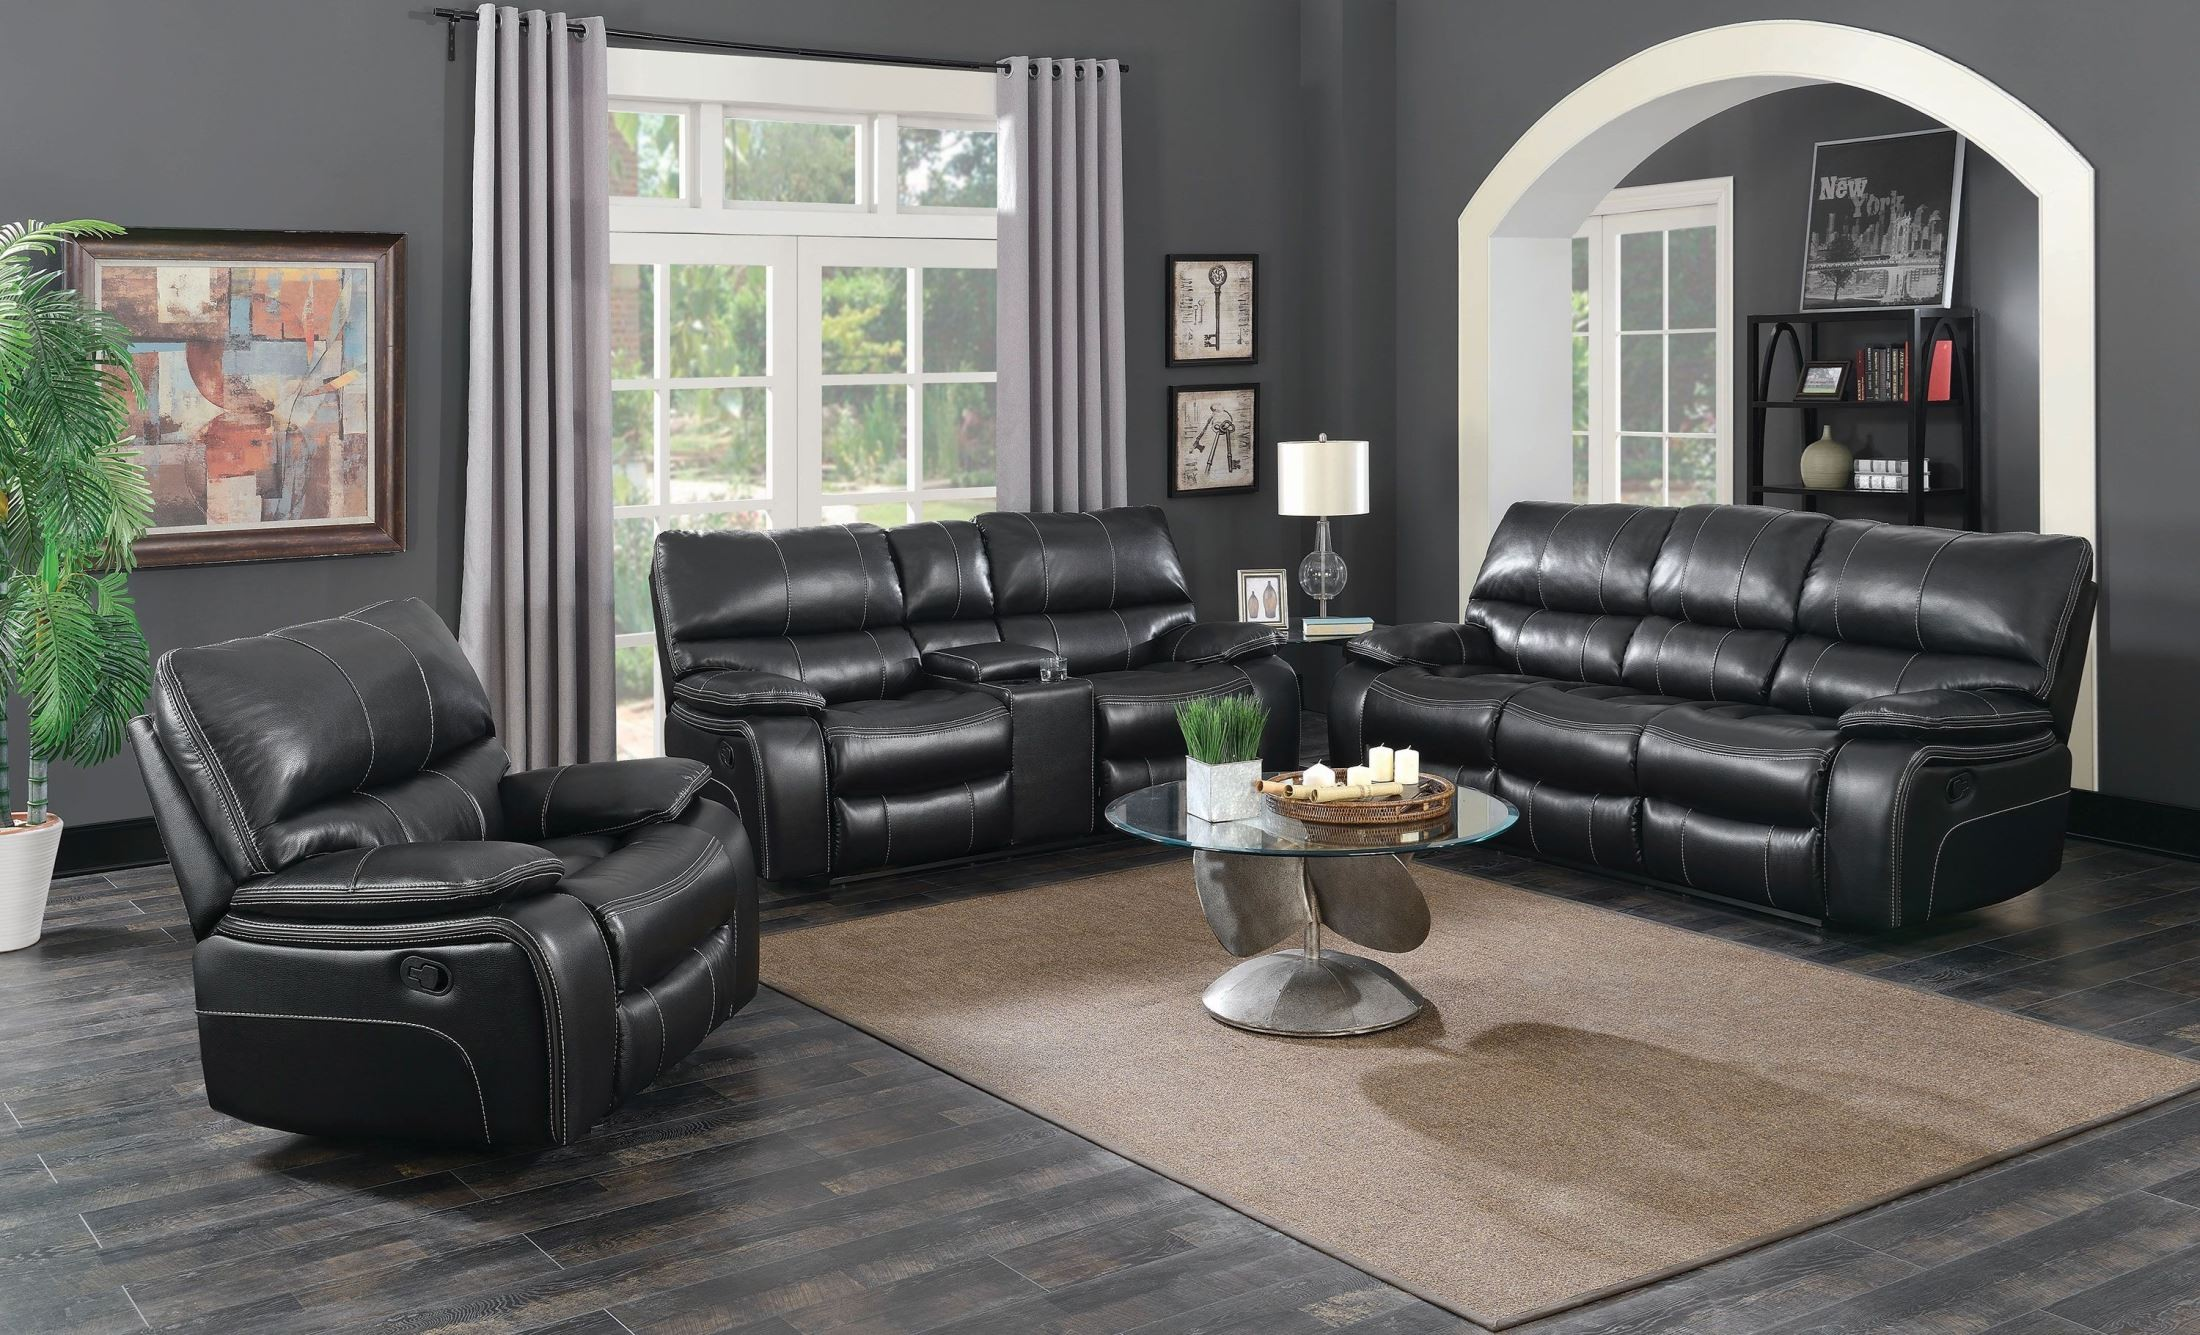 Willemse black reclining living room set 601934 coaster Reclining living room furniture